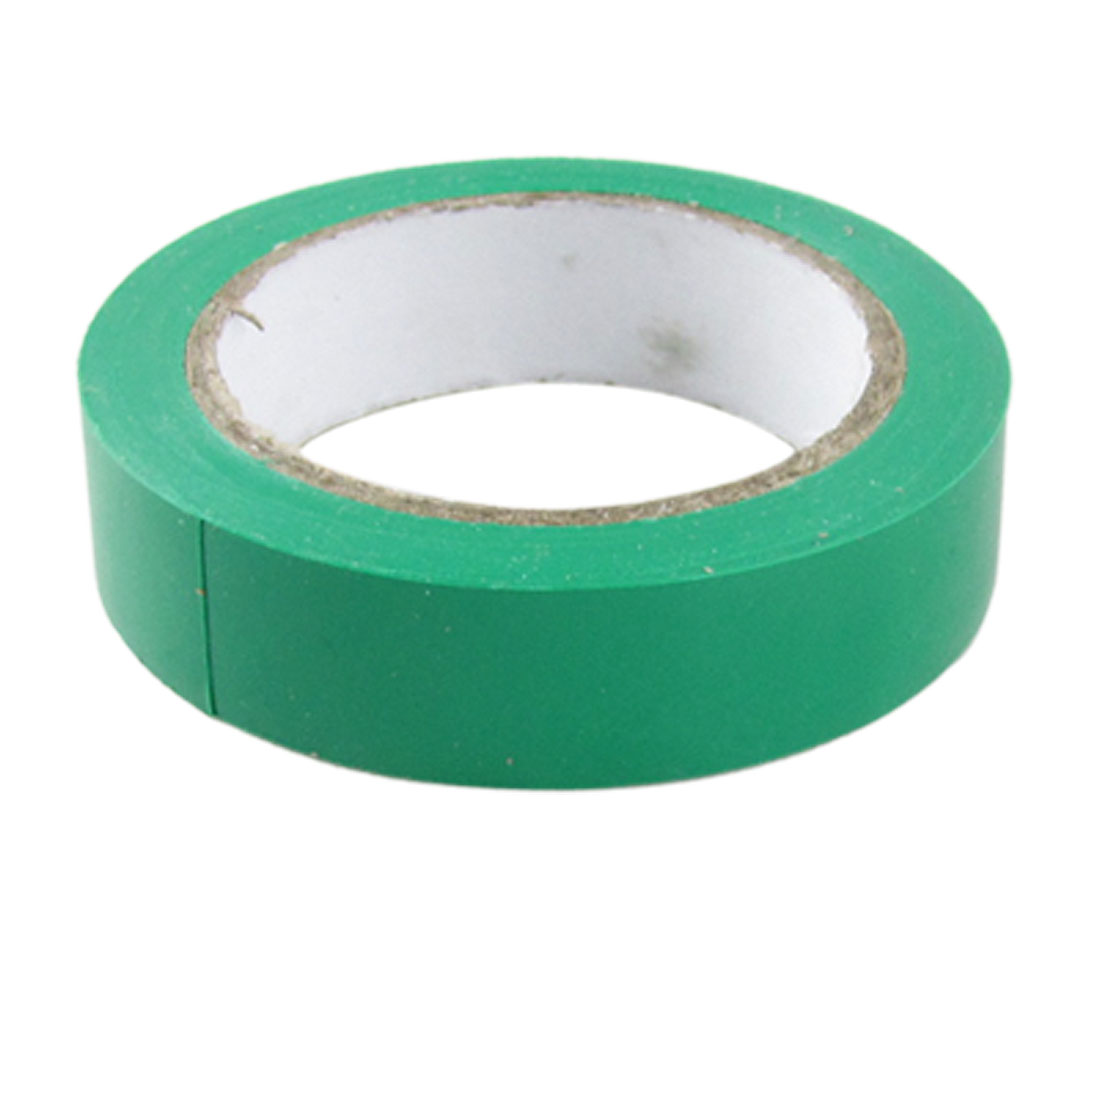 71mm x 17mm Green PVC Electrical Wire Adhesive Insulation Tape Roll